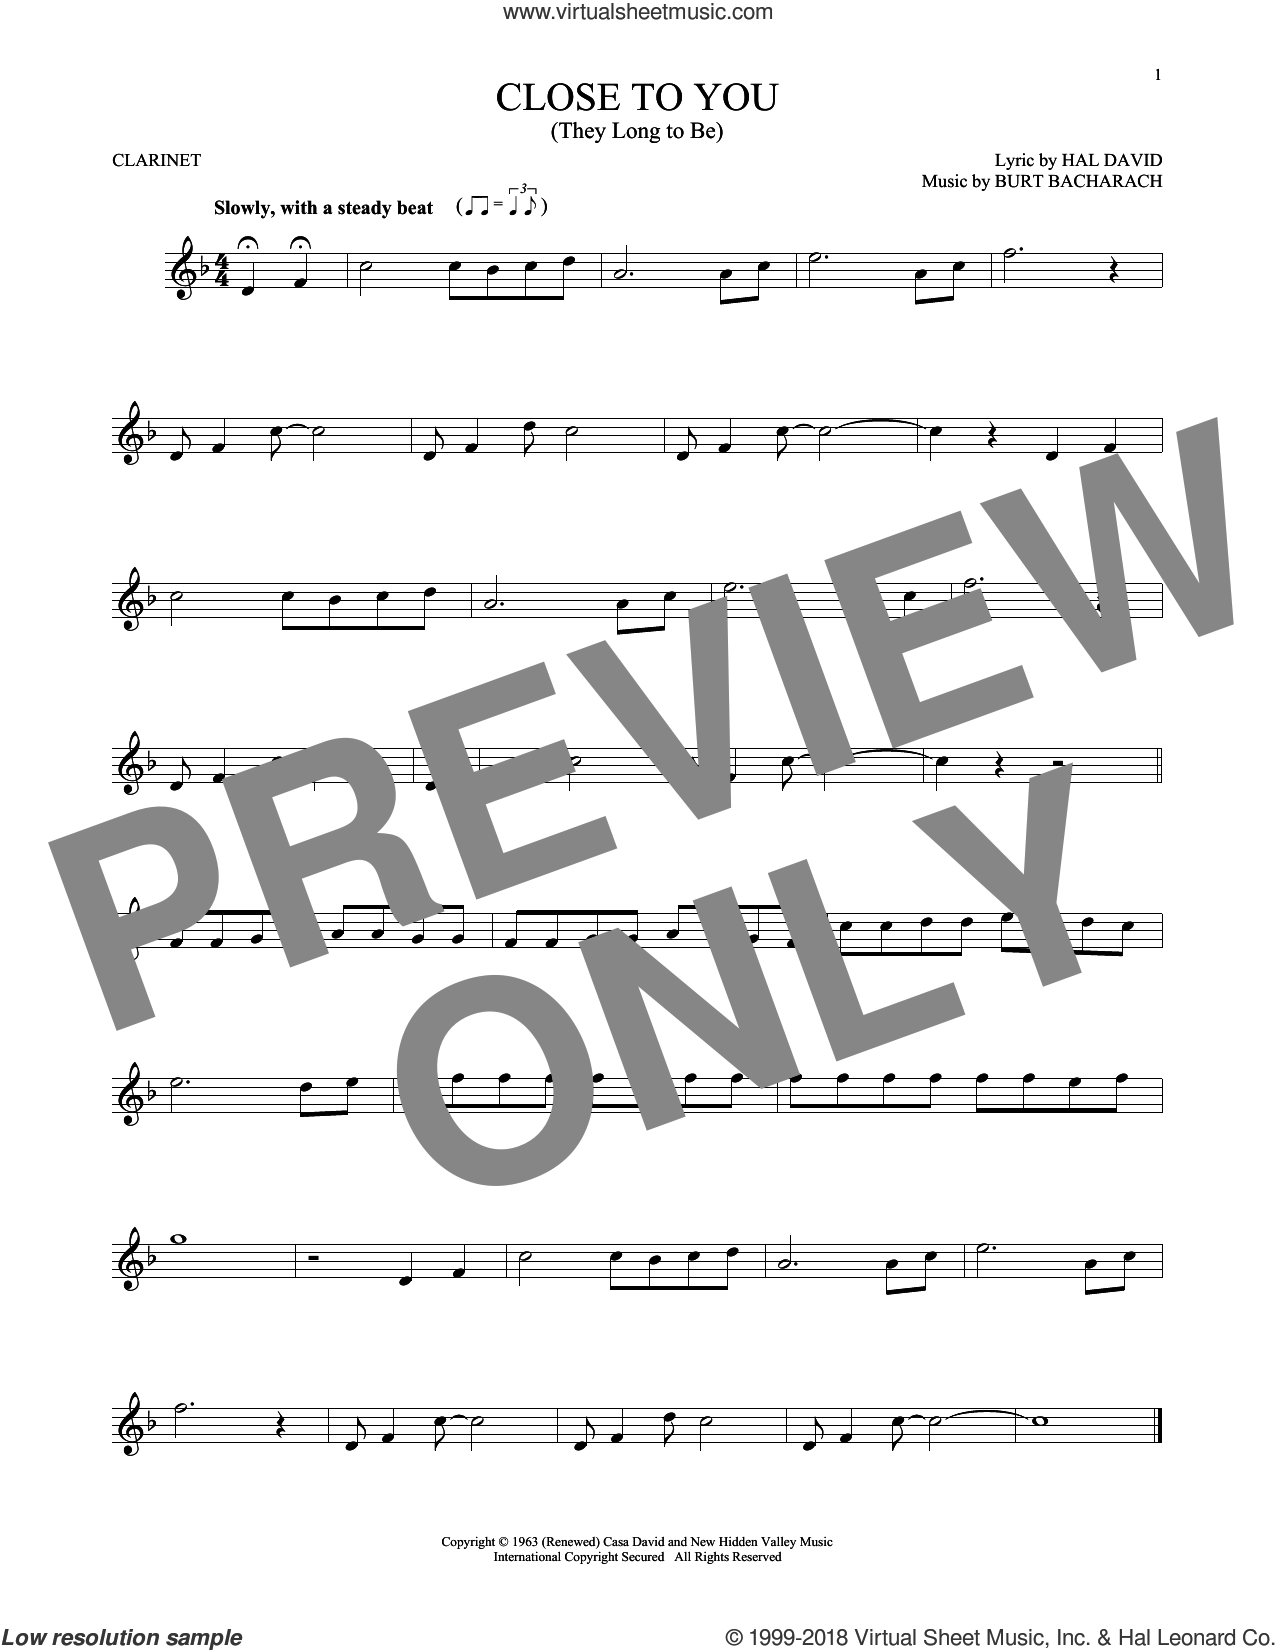 (They Long To Be) Close To You sheet music for clarinet solo by Burt Bacharach, Carpenters and Hal David, intermediate skill level